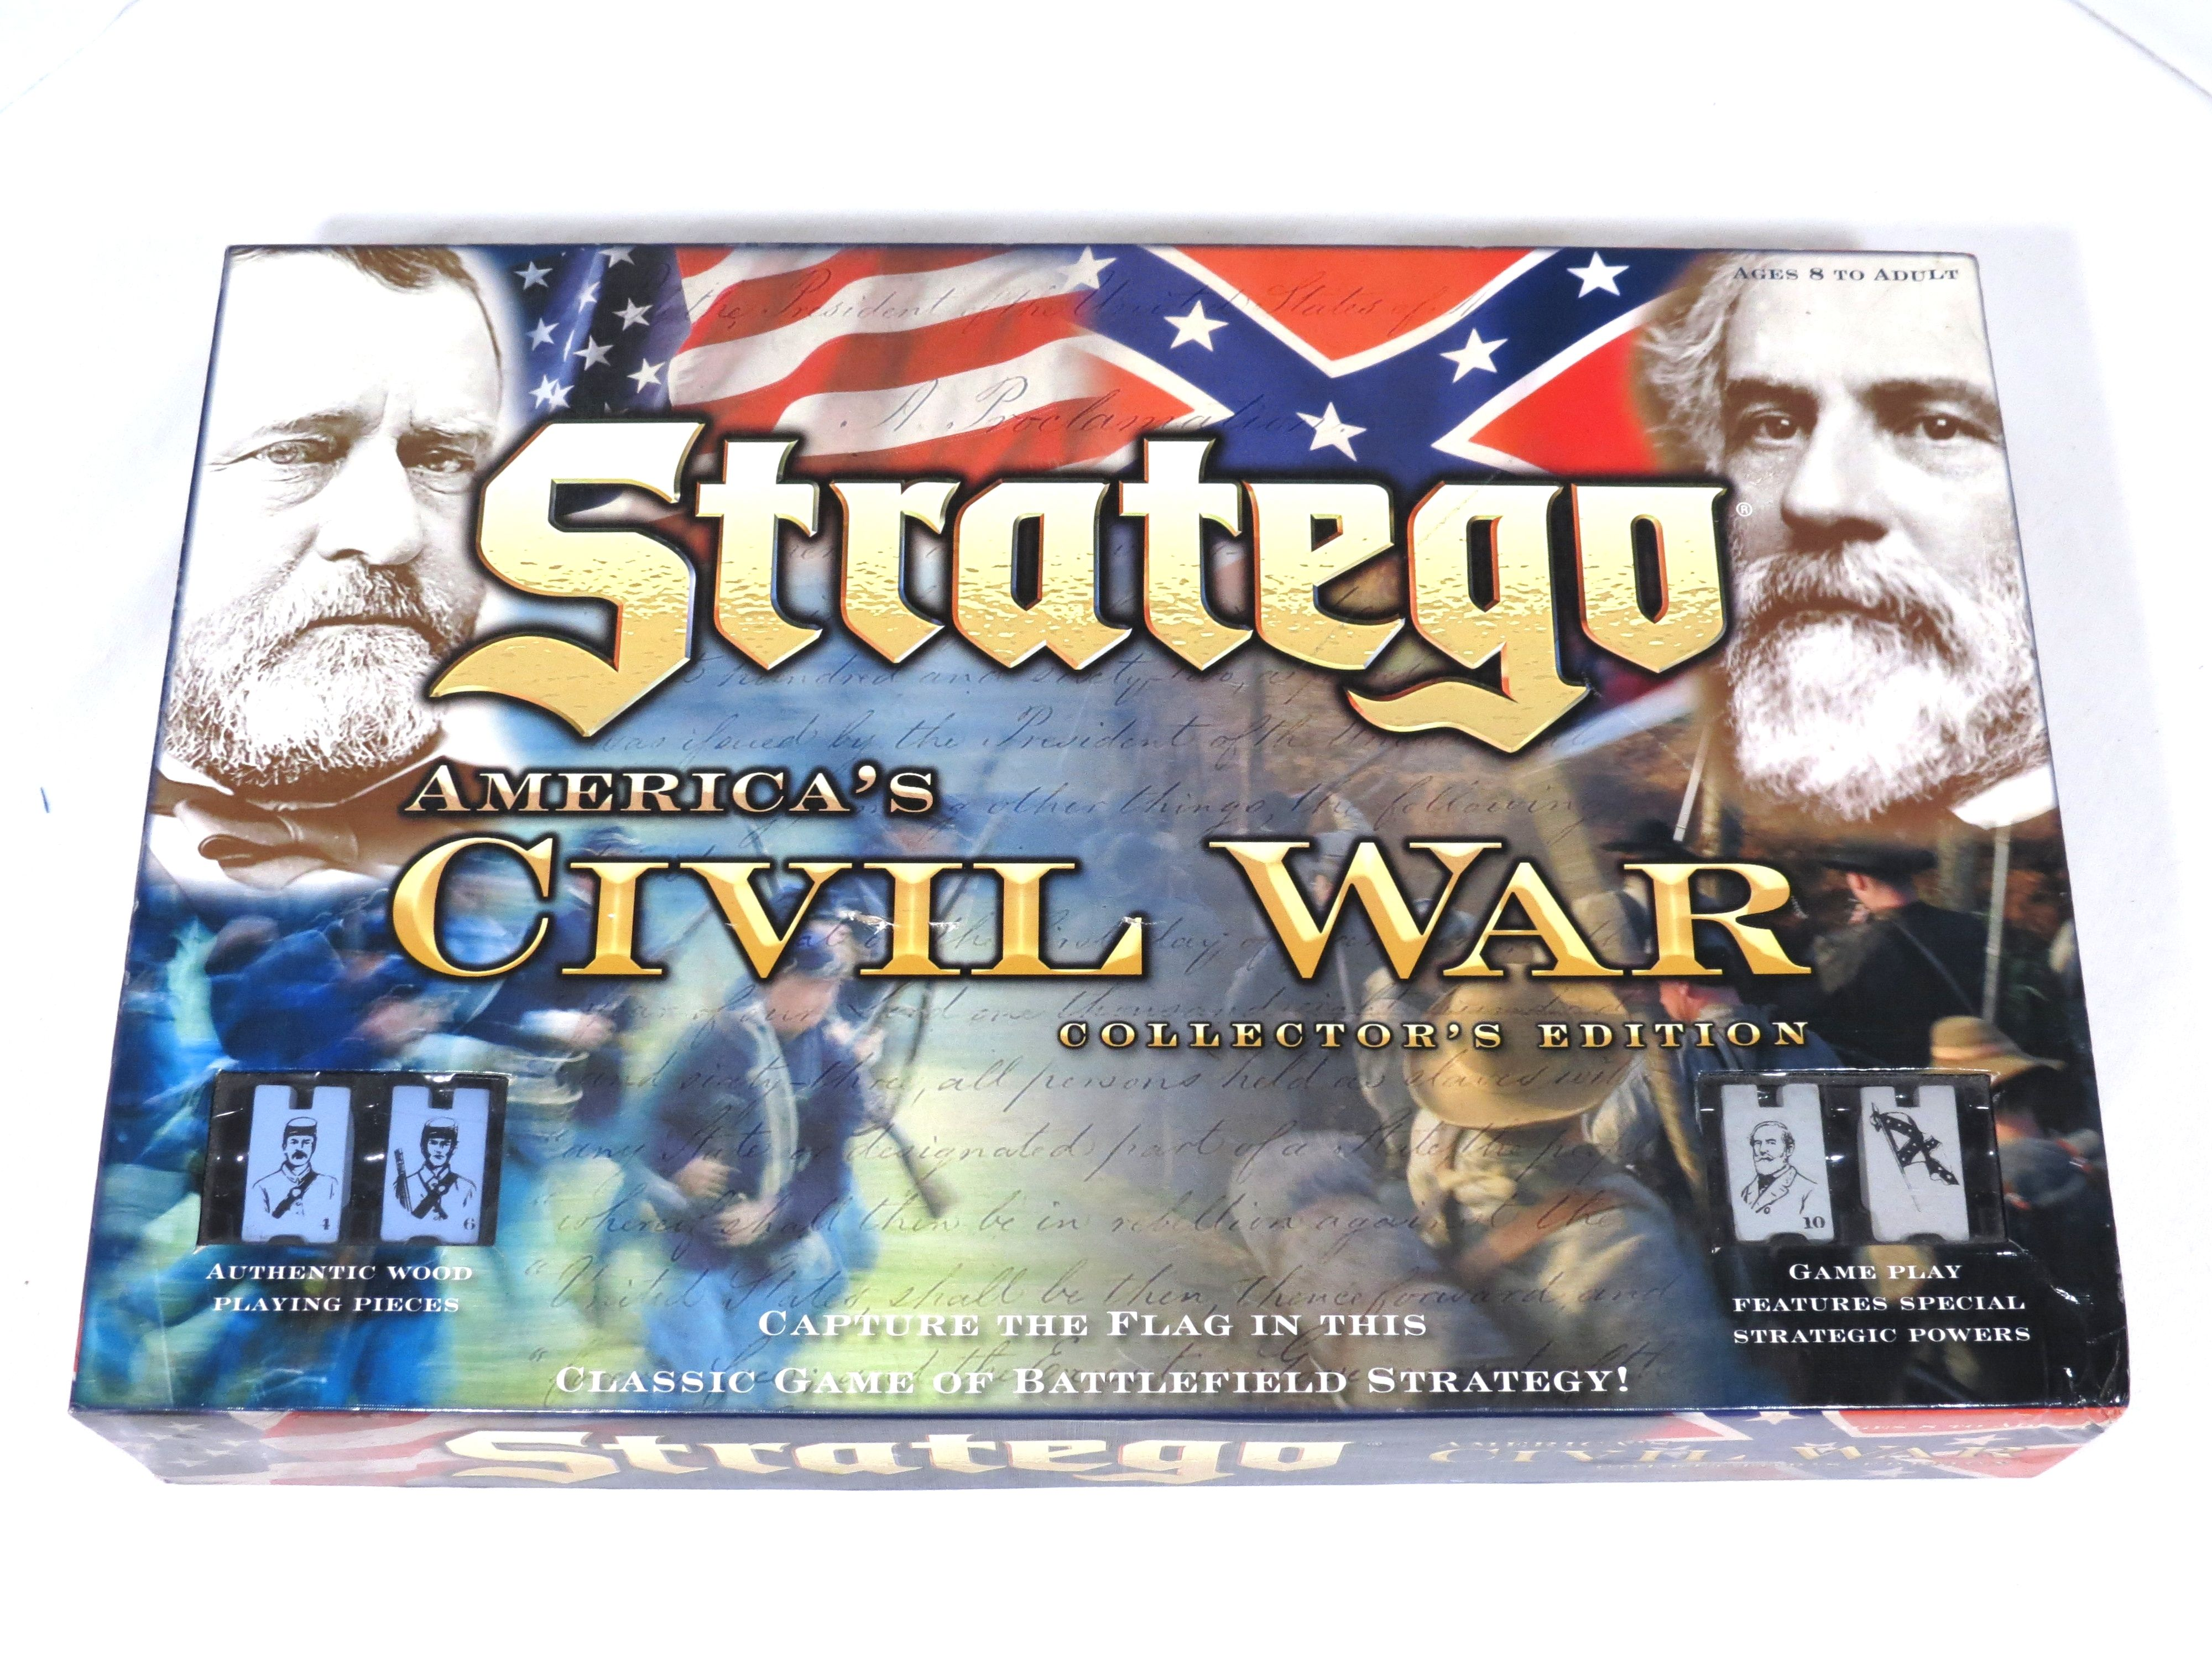 Stratego AmericasCivilWar Board Game by Hasbro 2007